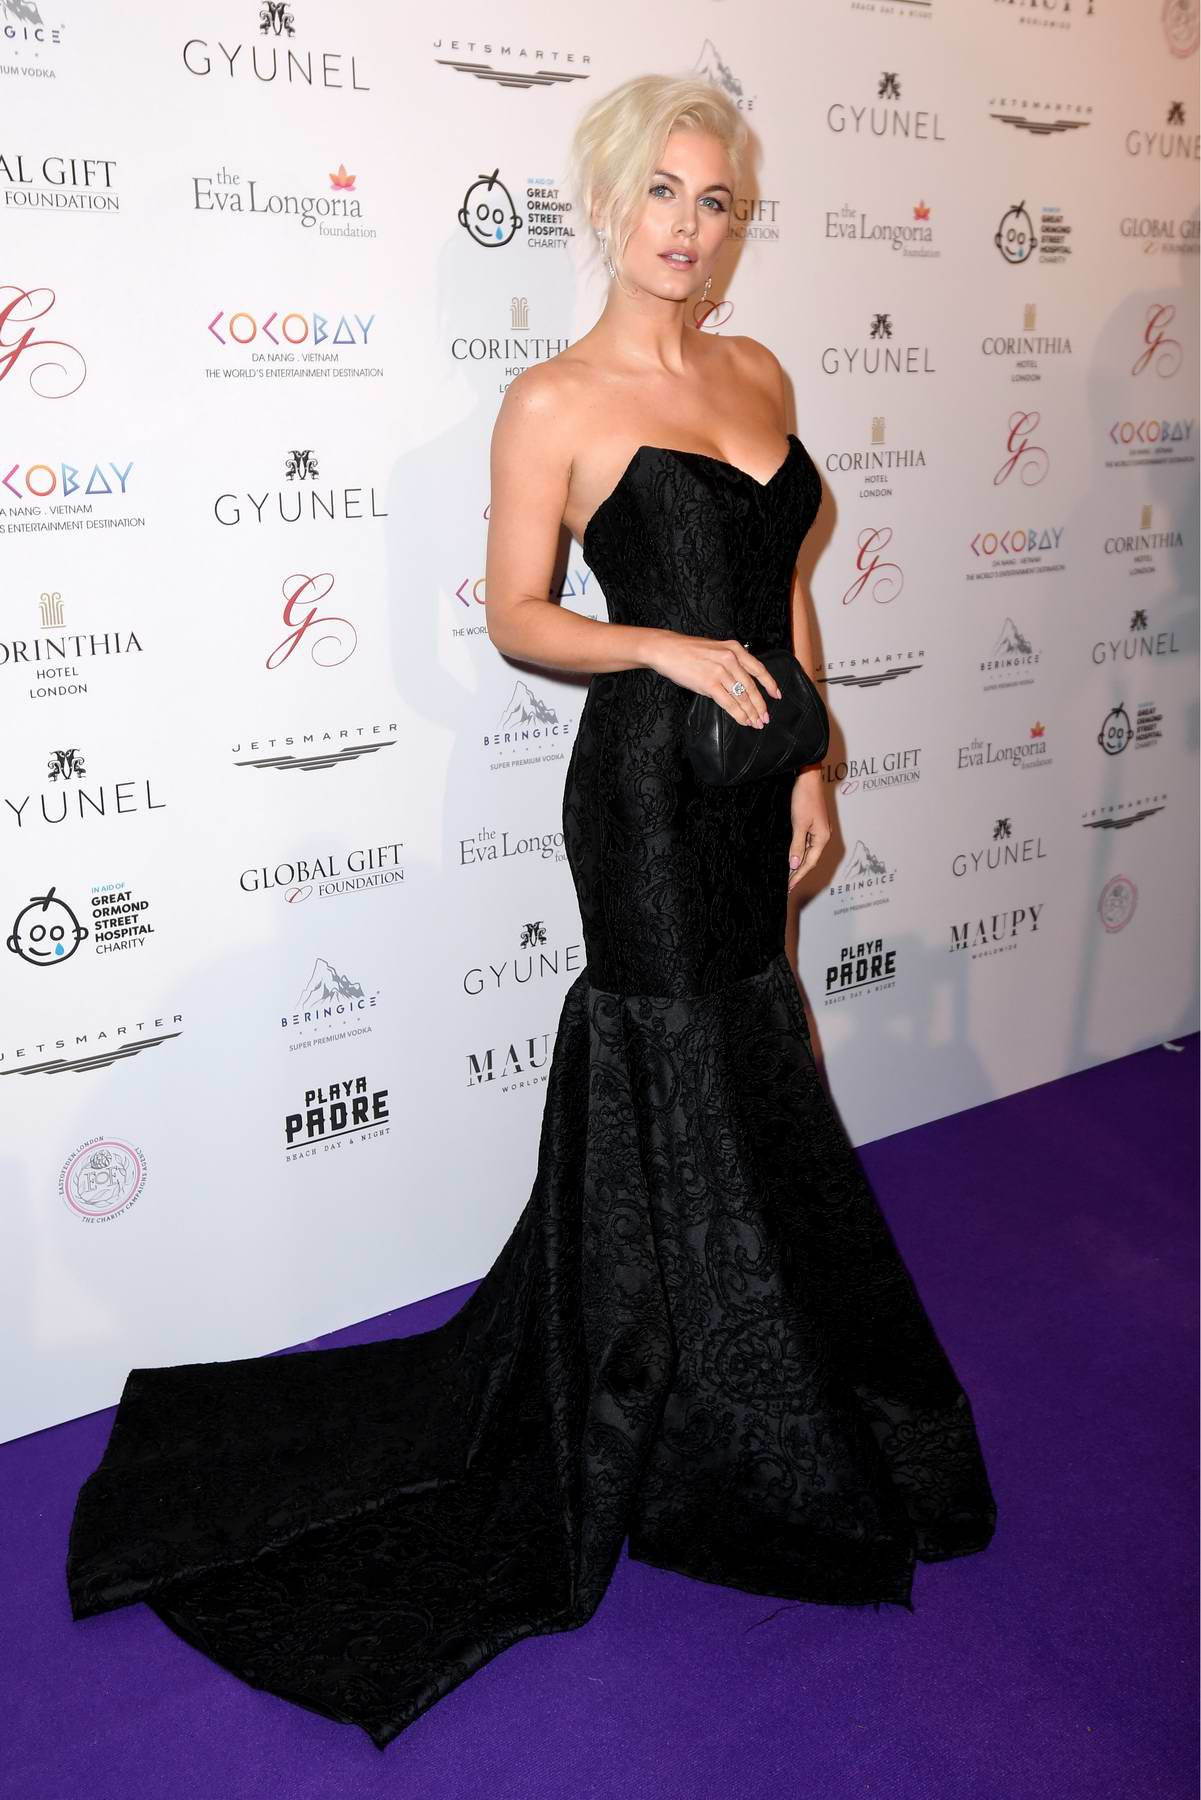 Ashley James at the Global Gift Gala held at The Corinthia Hotel in London